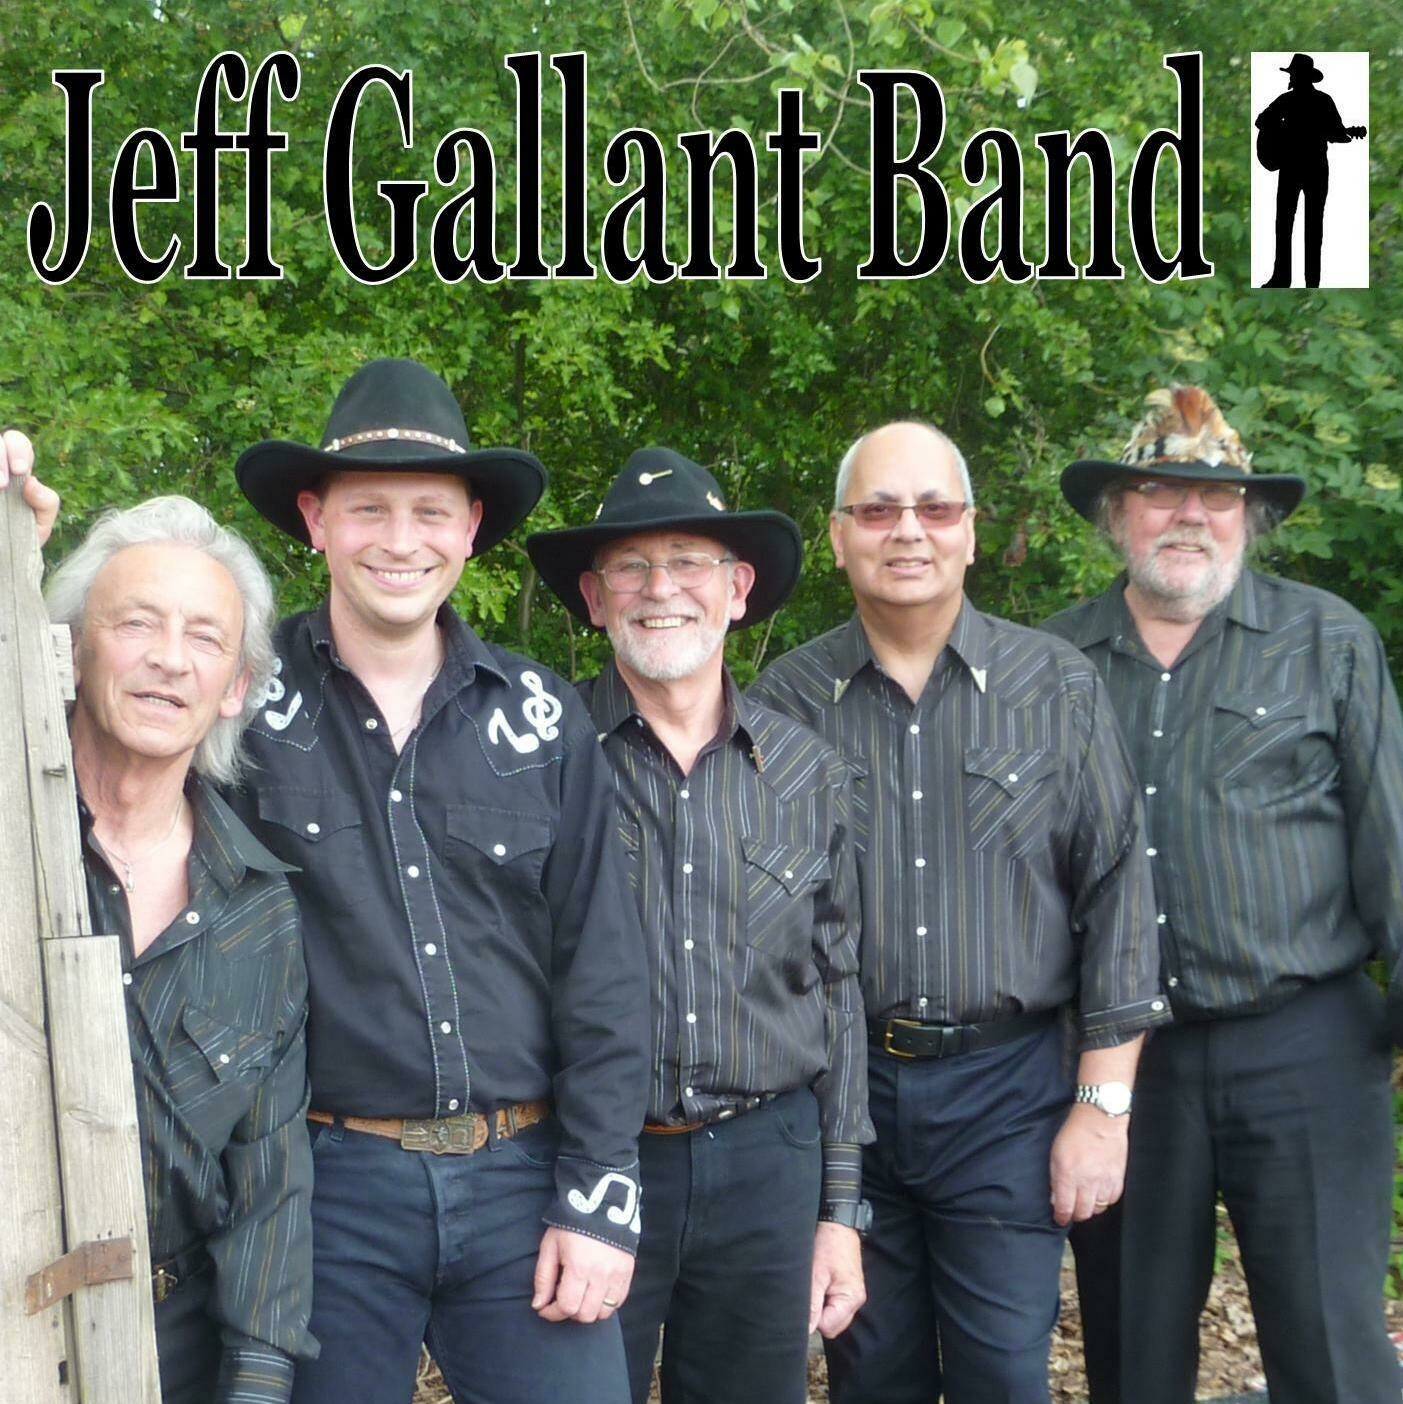 CD - JEFF GALLANT BAND